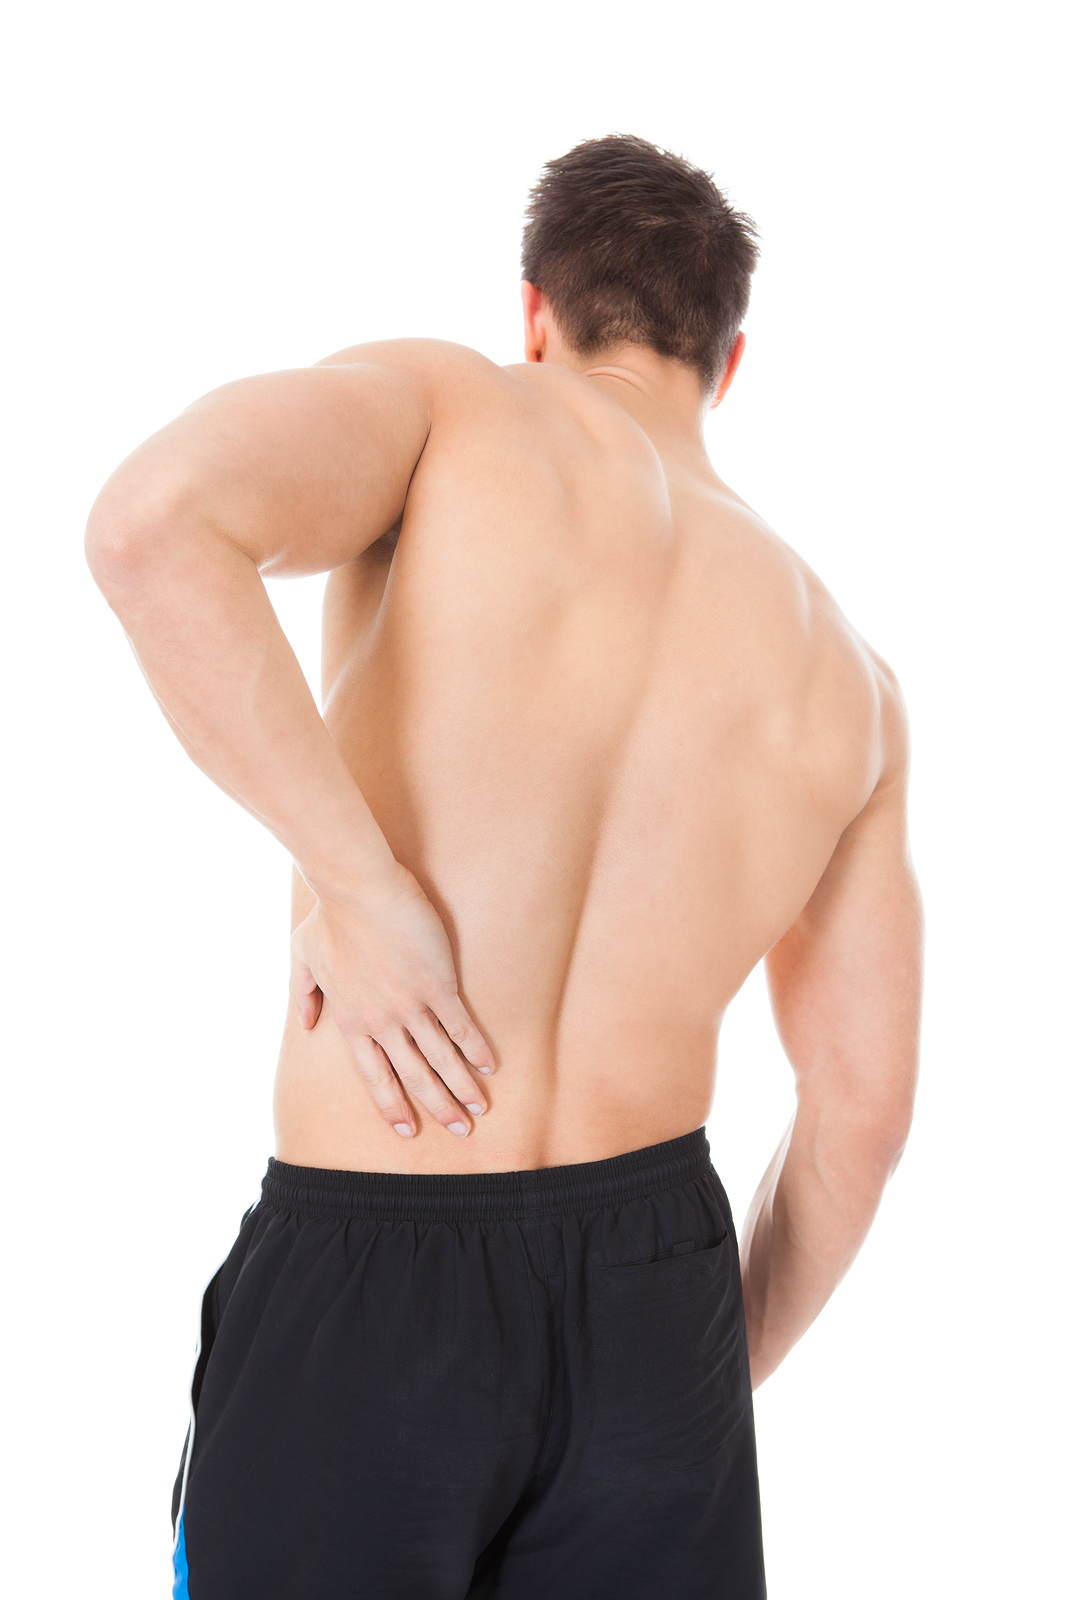 relief-sciatica-farmington-michigan